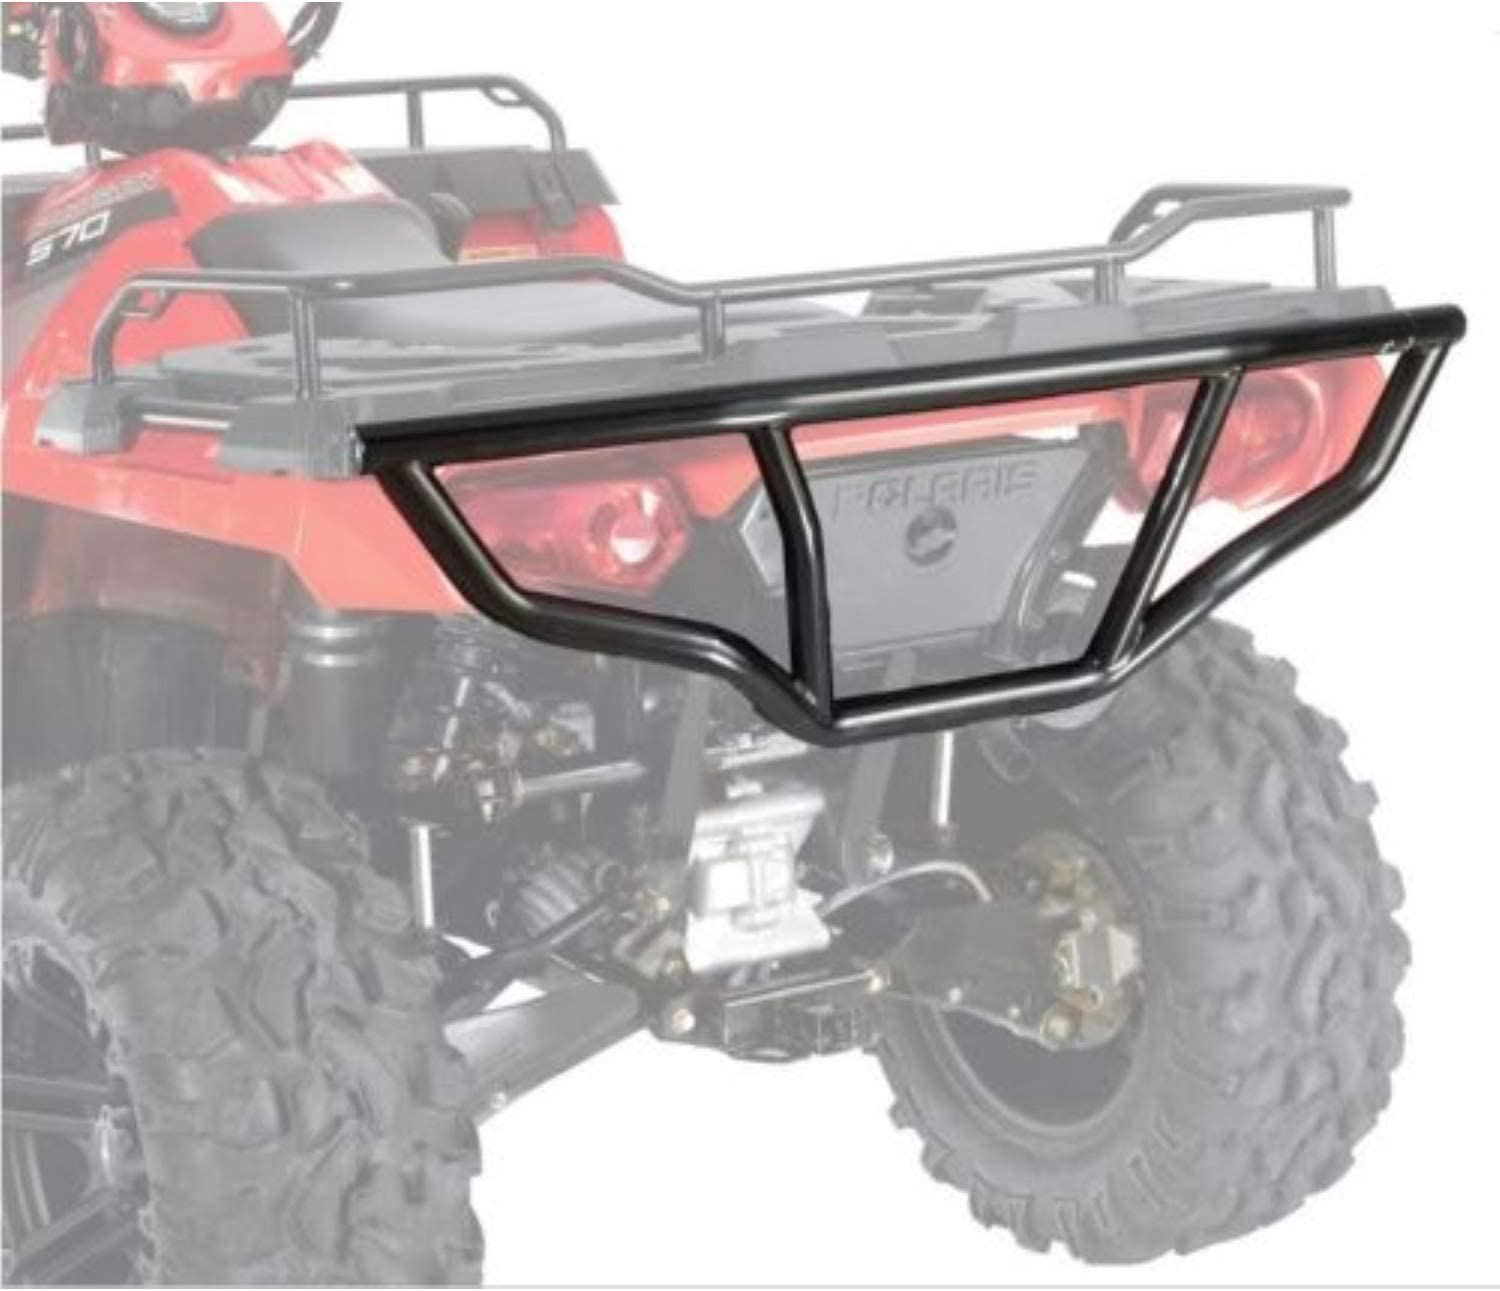 Black Front Brushguard 2879714 New OEM Polaris Sportsman 570 450 H.O